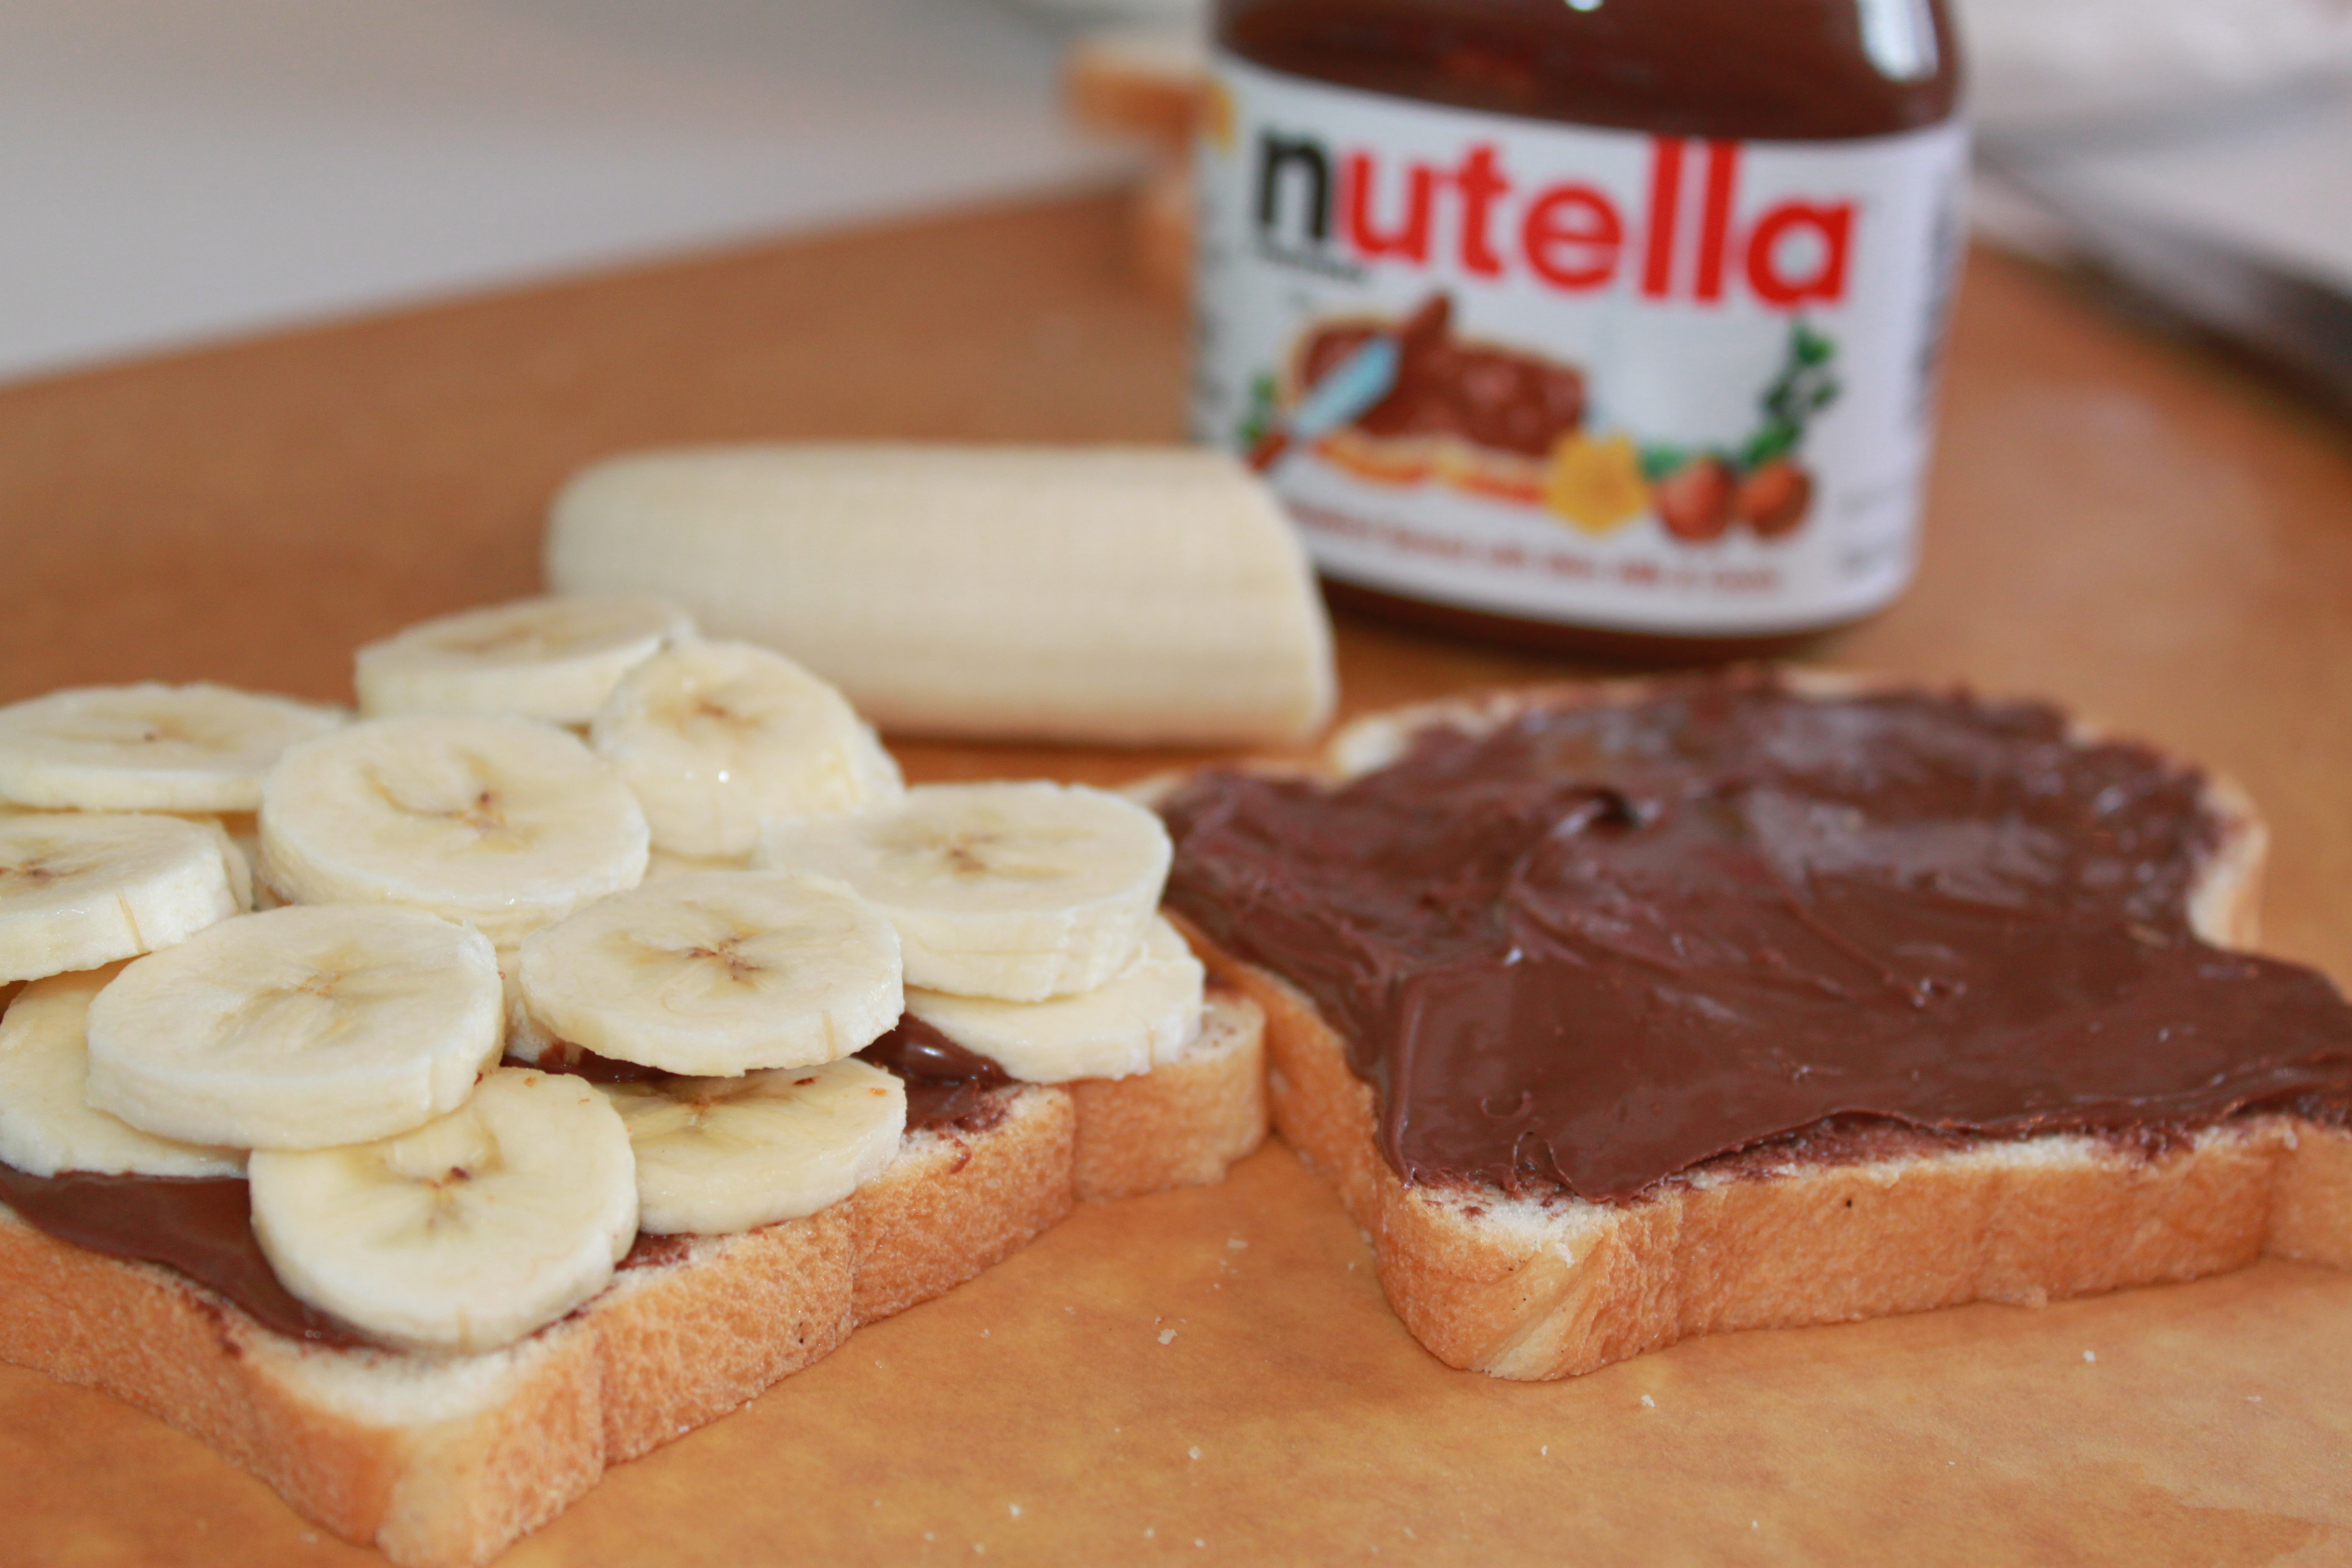 Pile the banana slices onto one half of the sandwich. Then spread yet ...